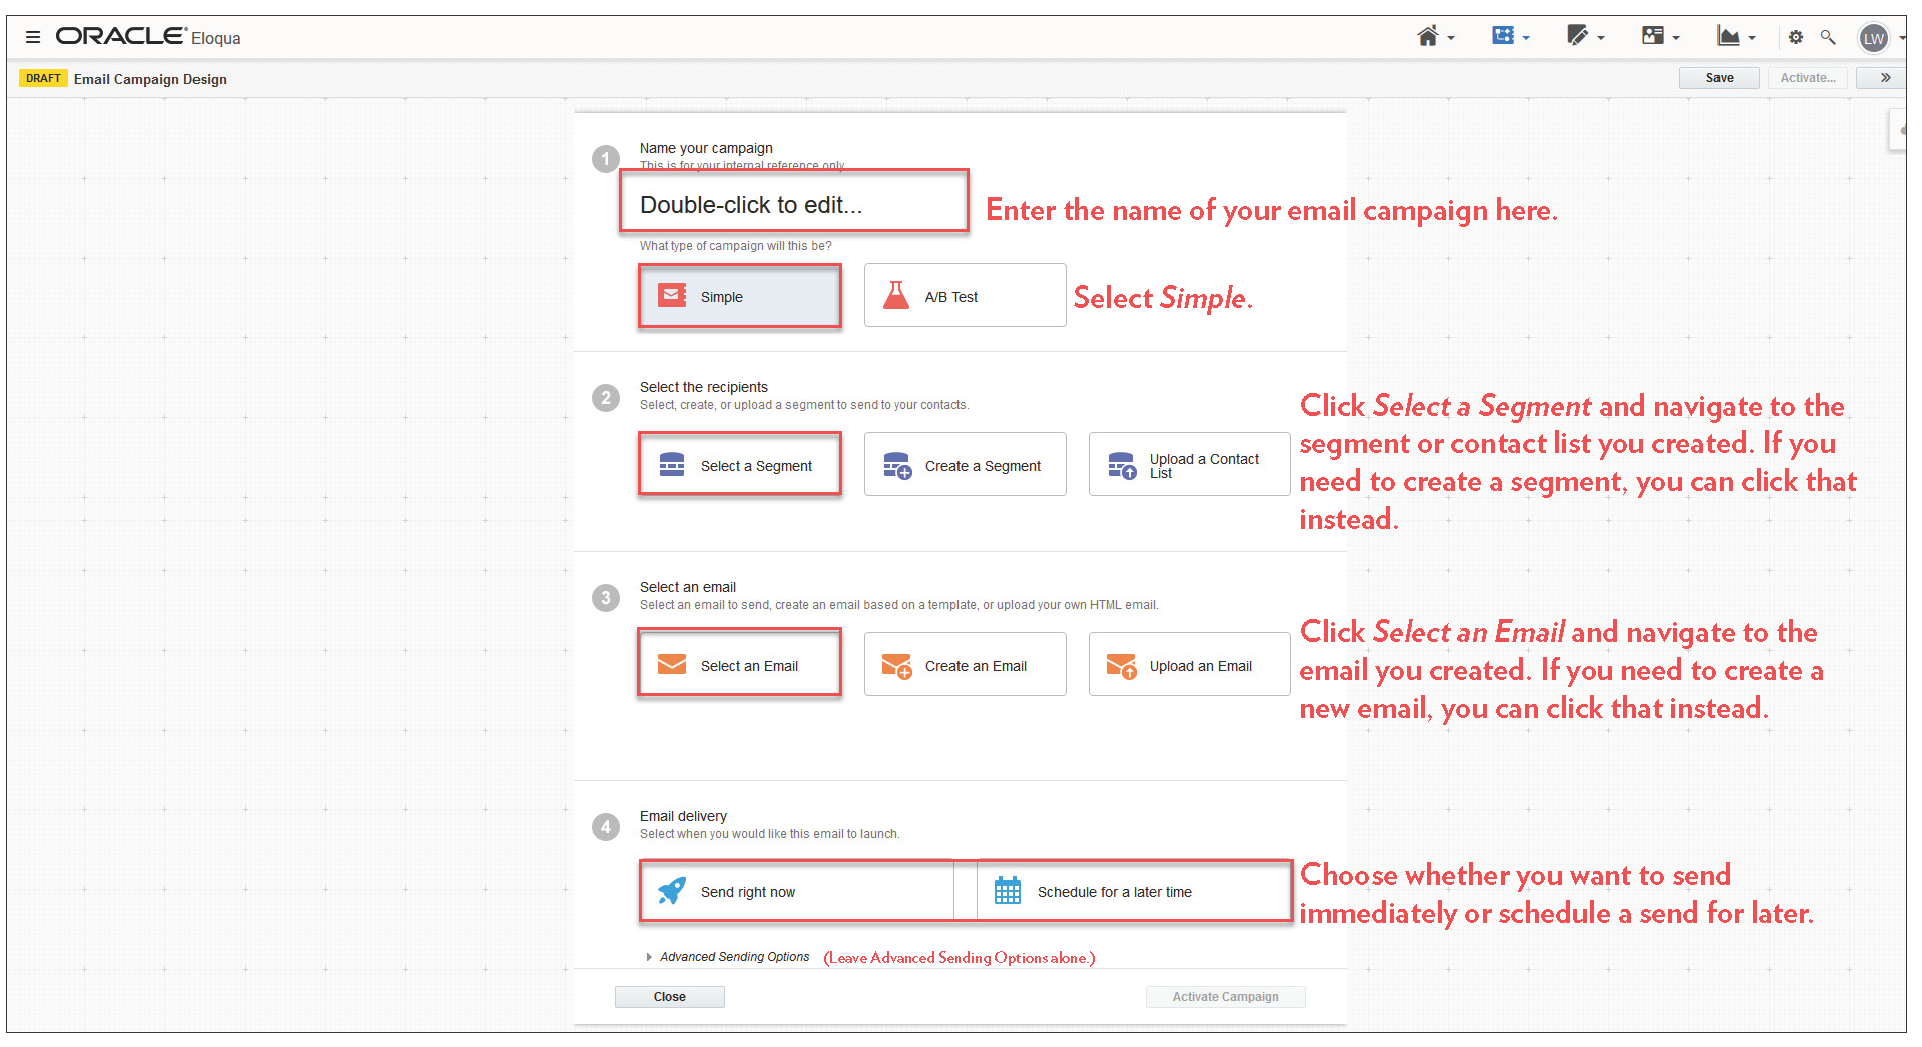 Eloqua_Campaigns-Simple_HowTo-04.png